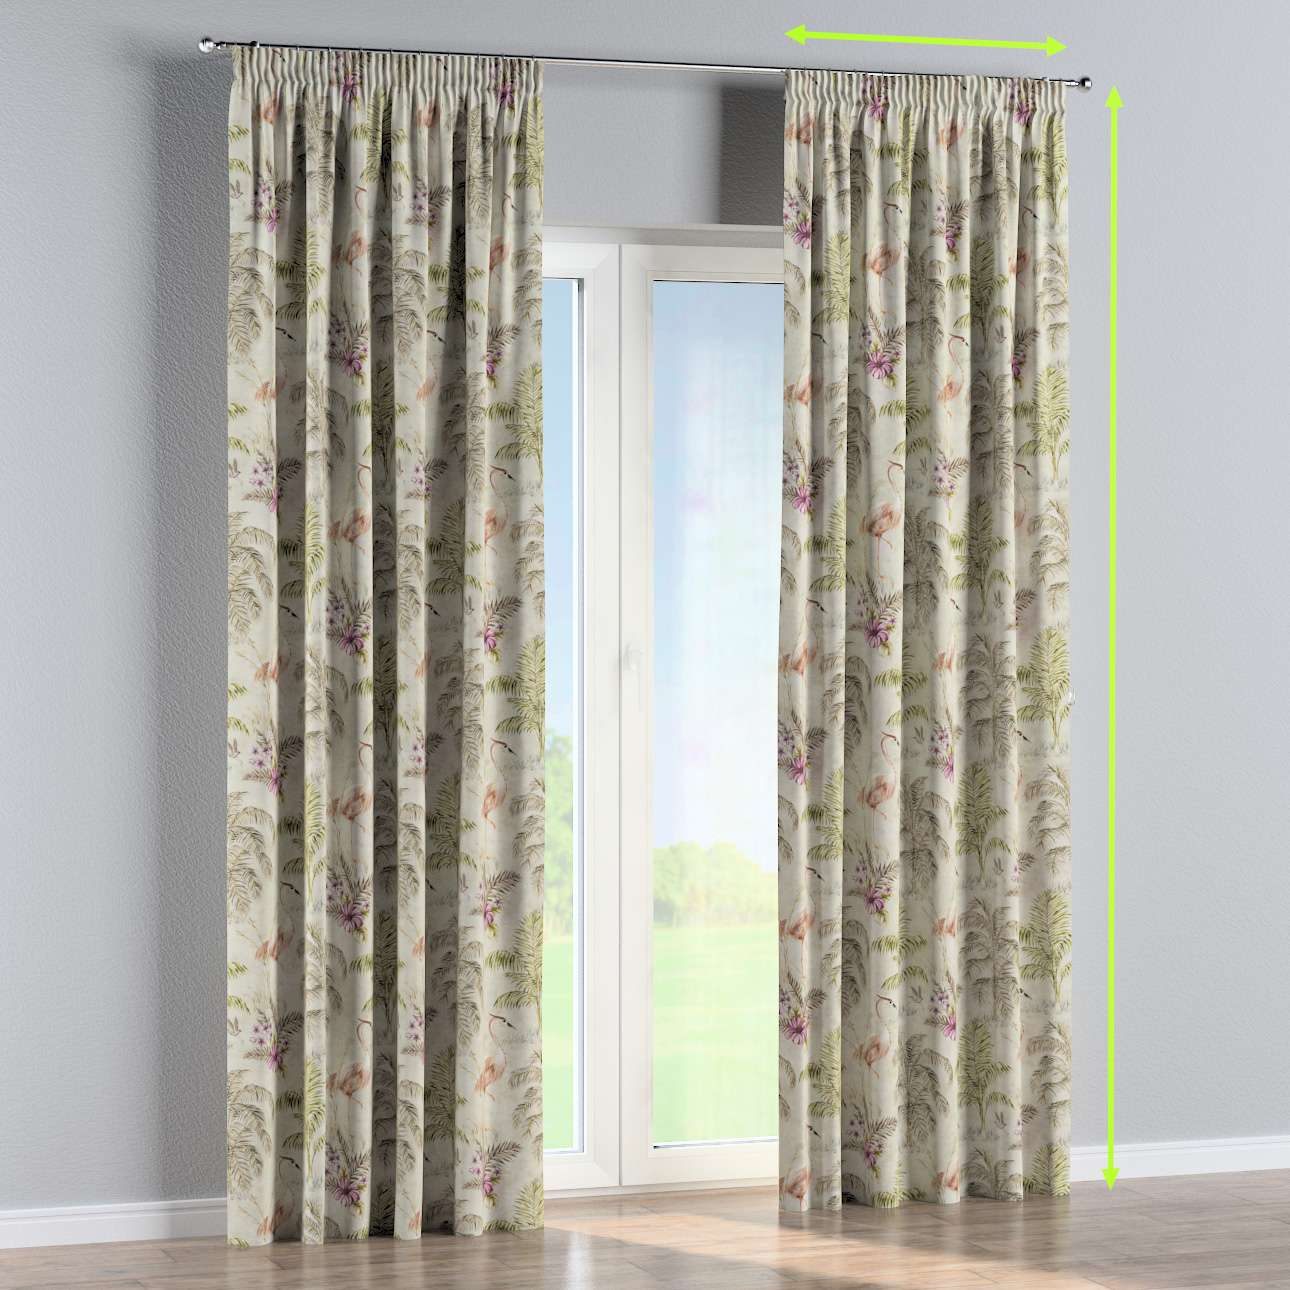 Pencil pleat curtains in collection Tropical Island, fabric: 142-61